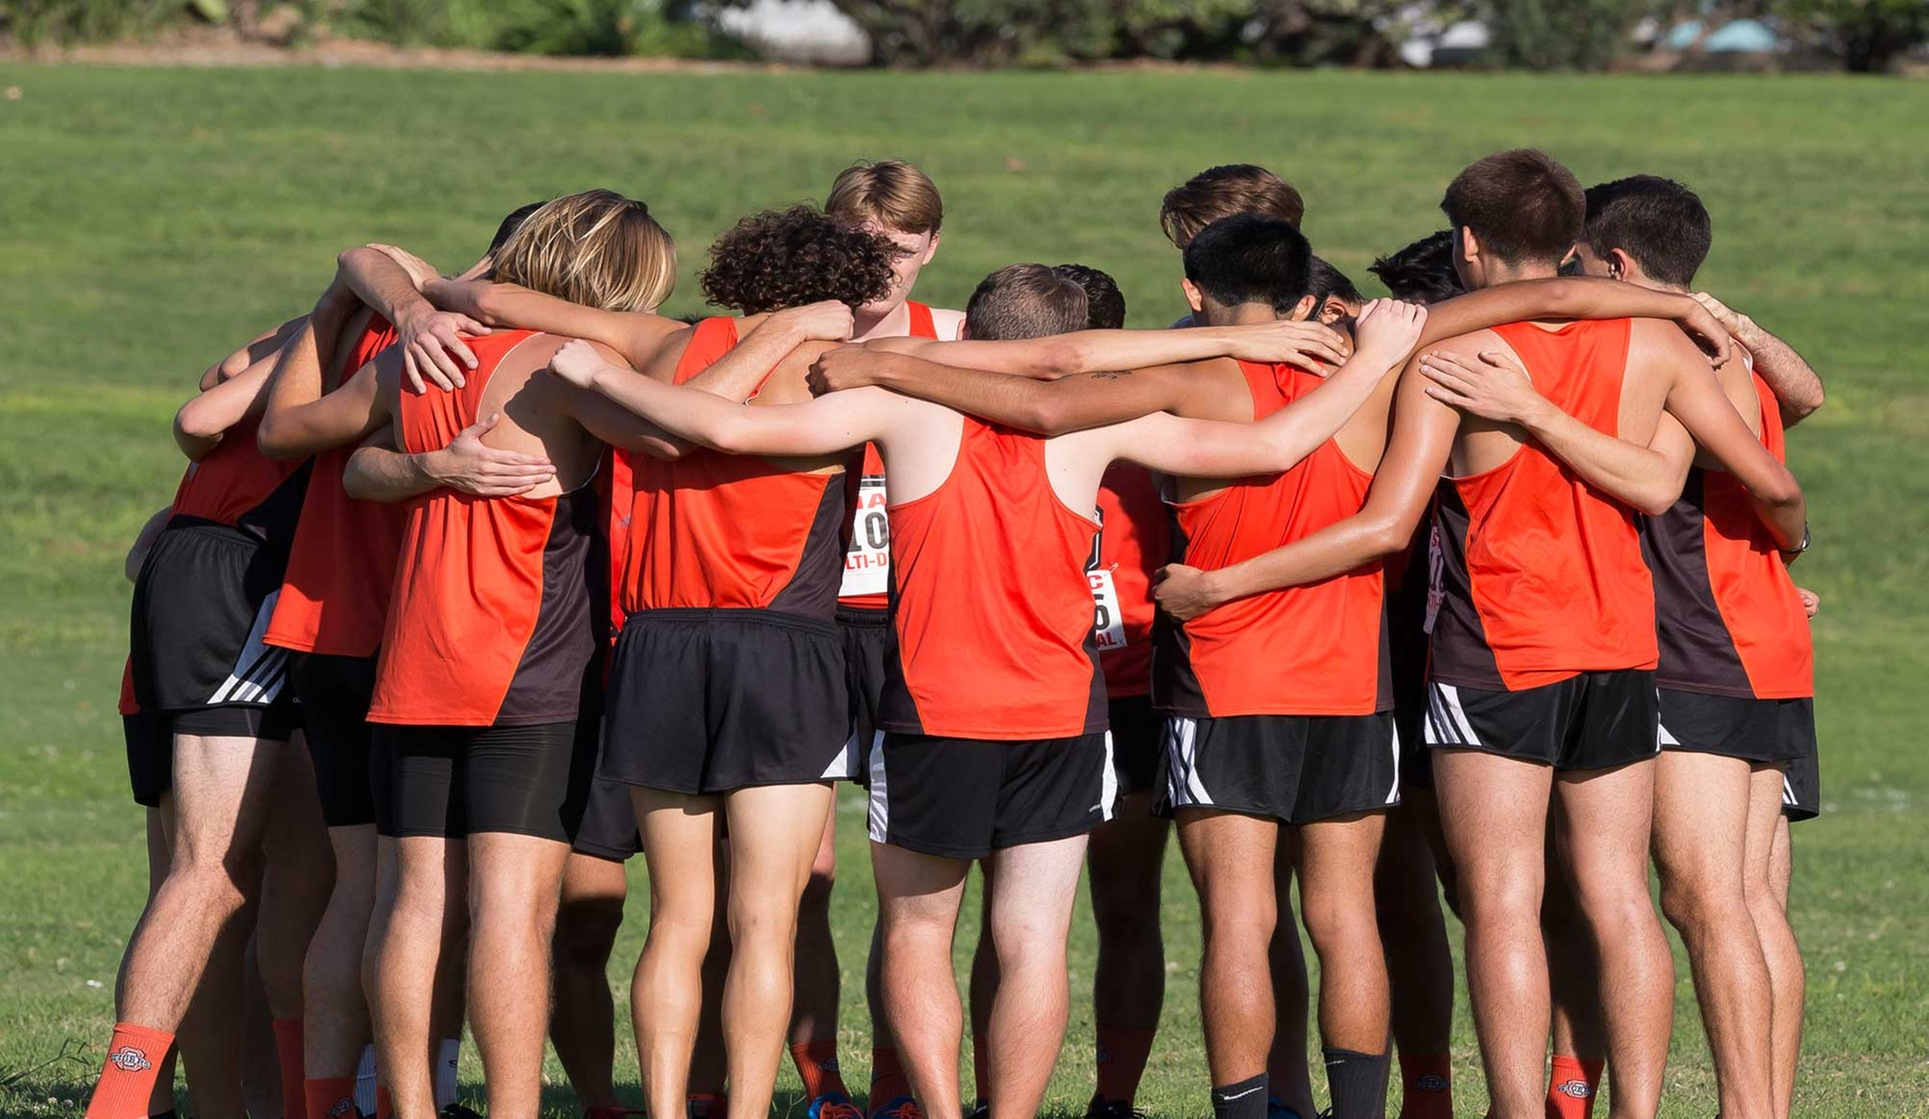 Oxy Men's Cross Country Headed to Nationals